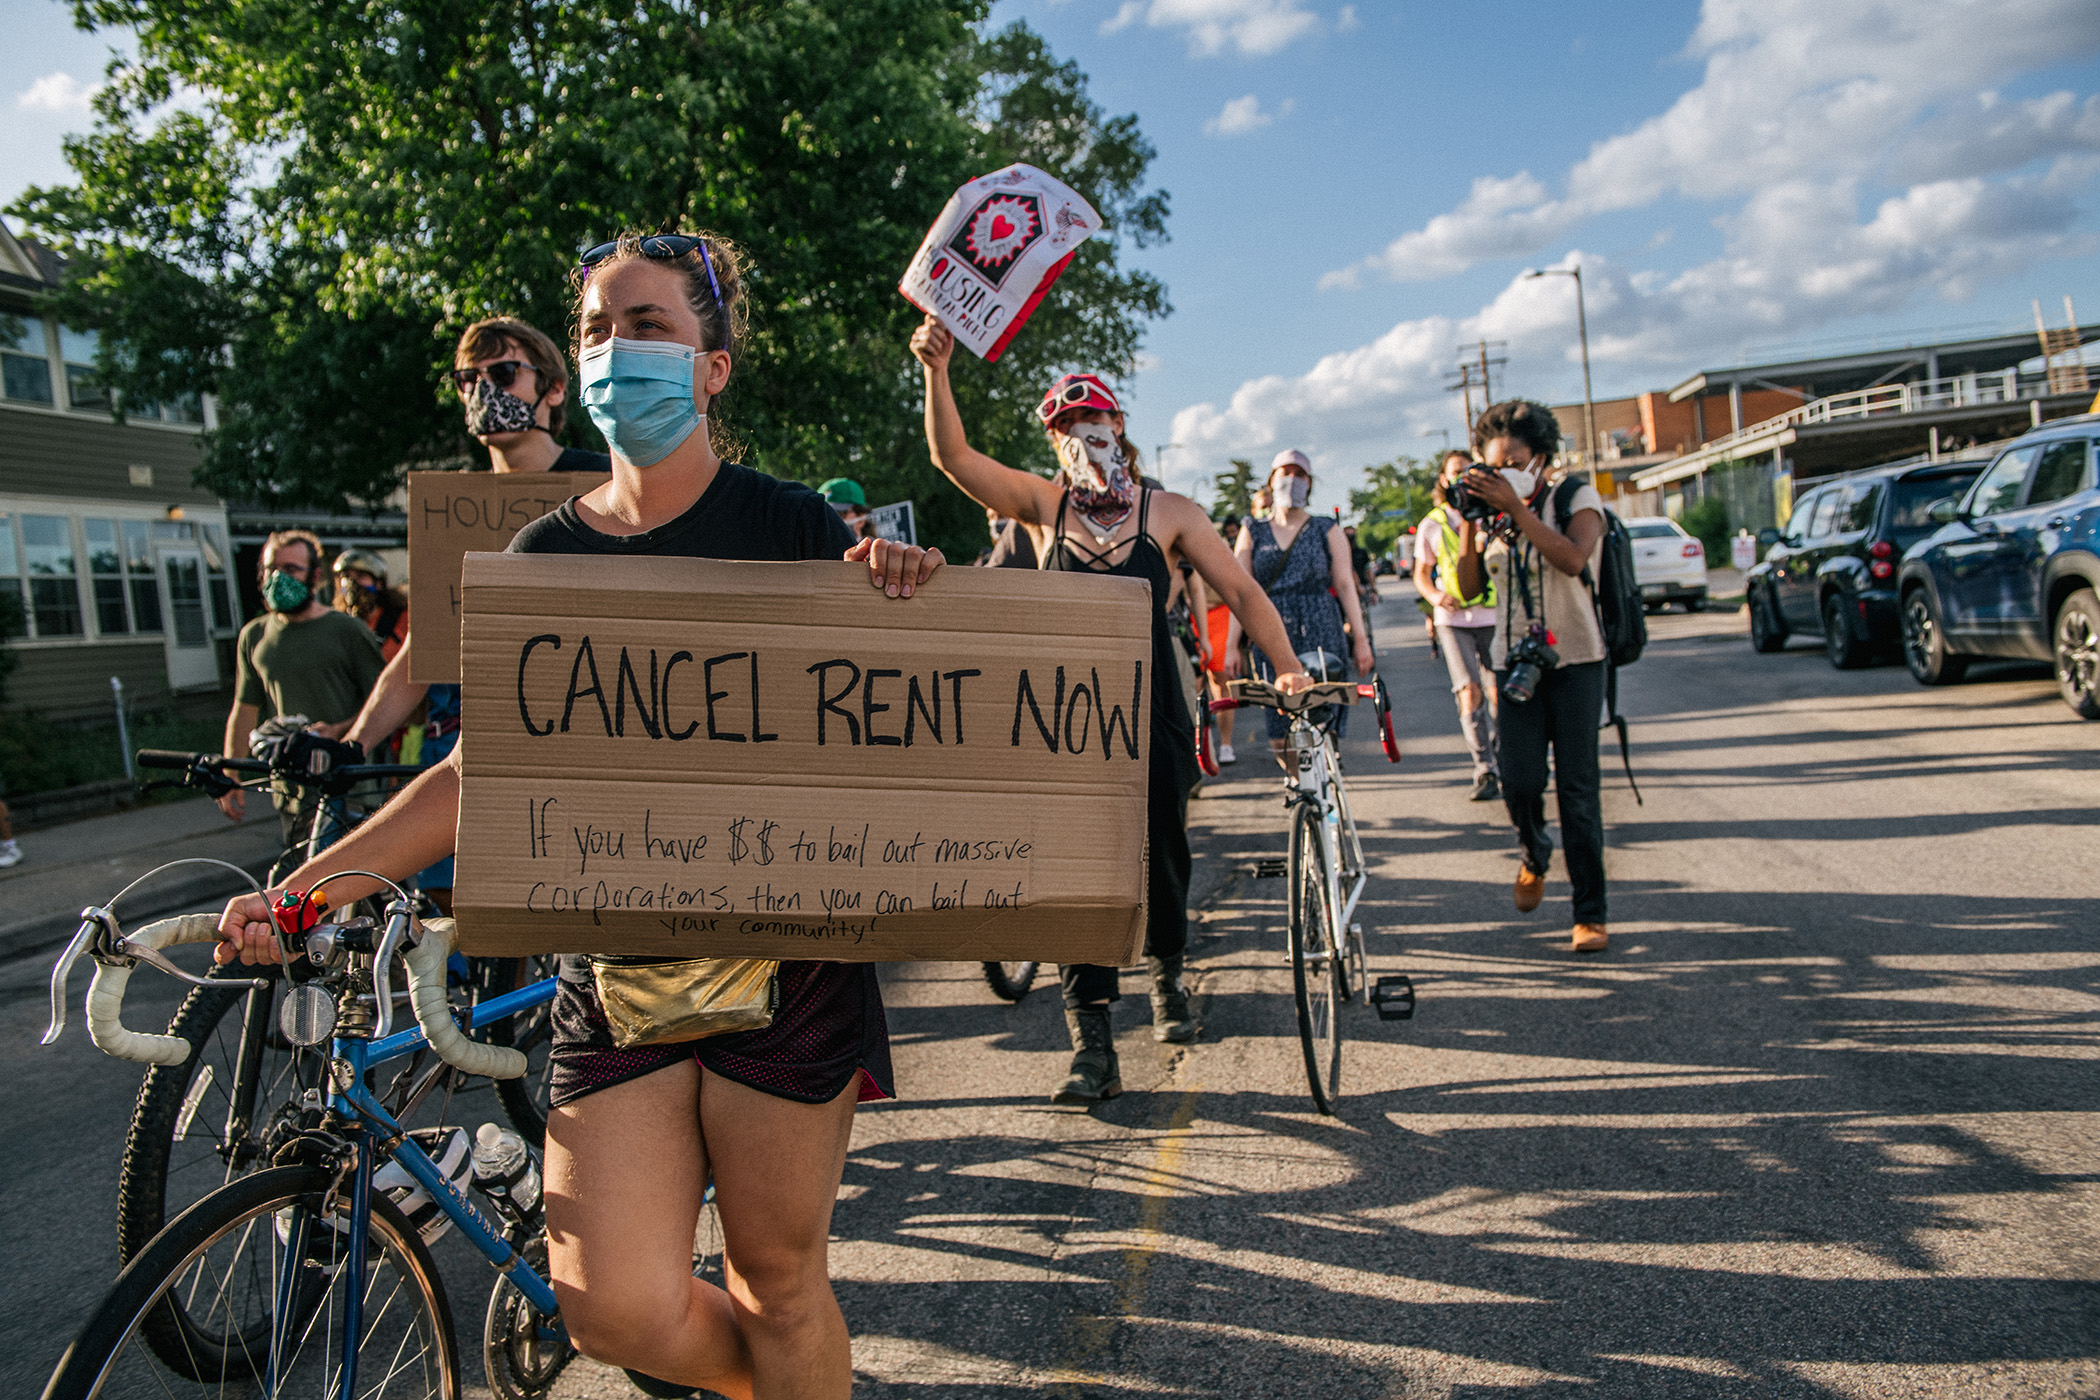 Demonstrators march in the street during the Cancel Rent and Mortgages rally on June 30 in Minneapolis. (Getty Images)